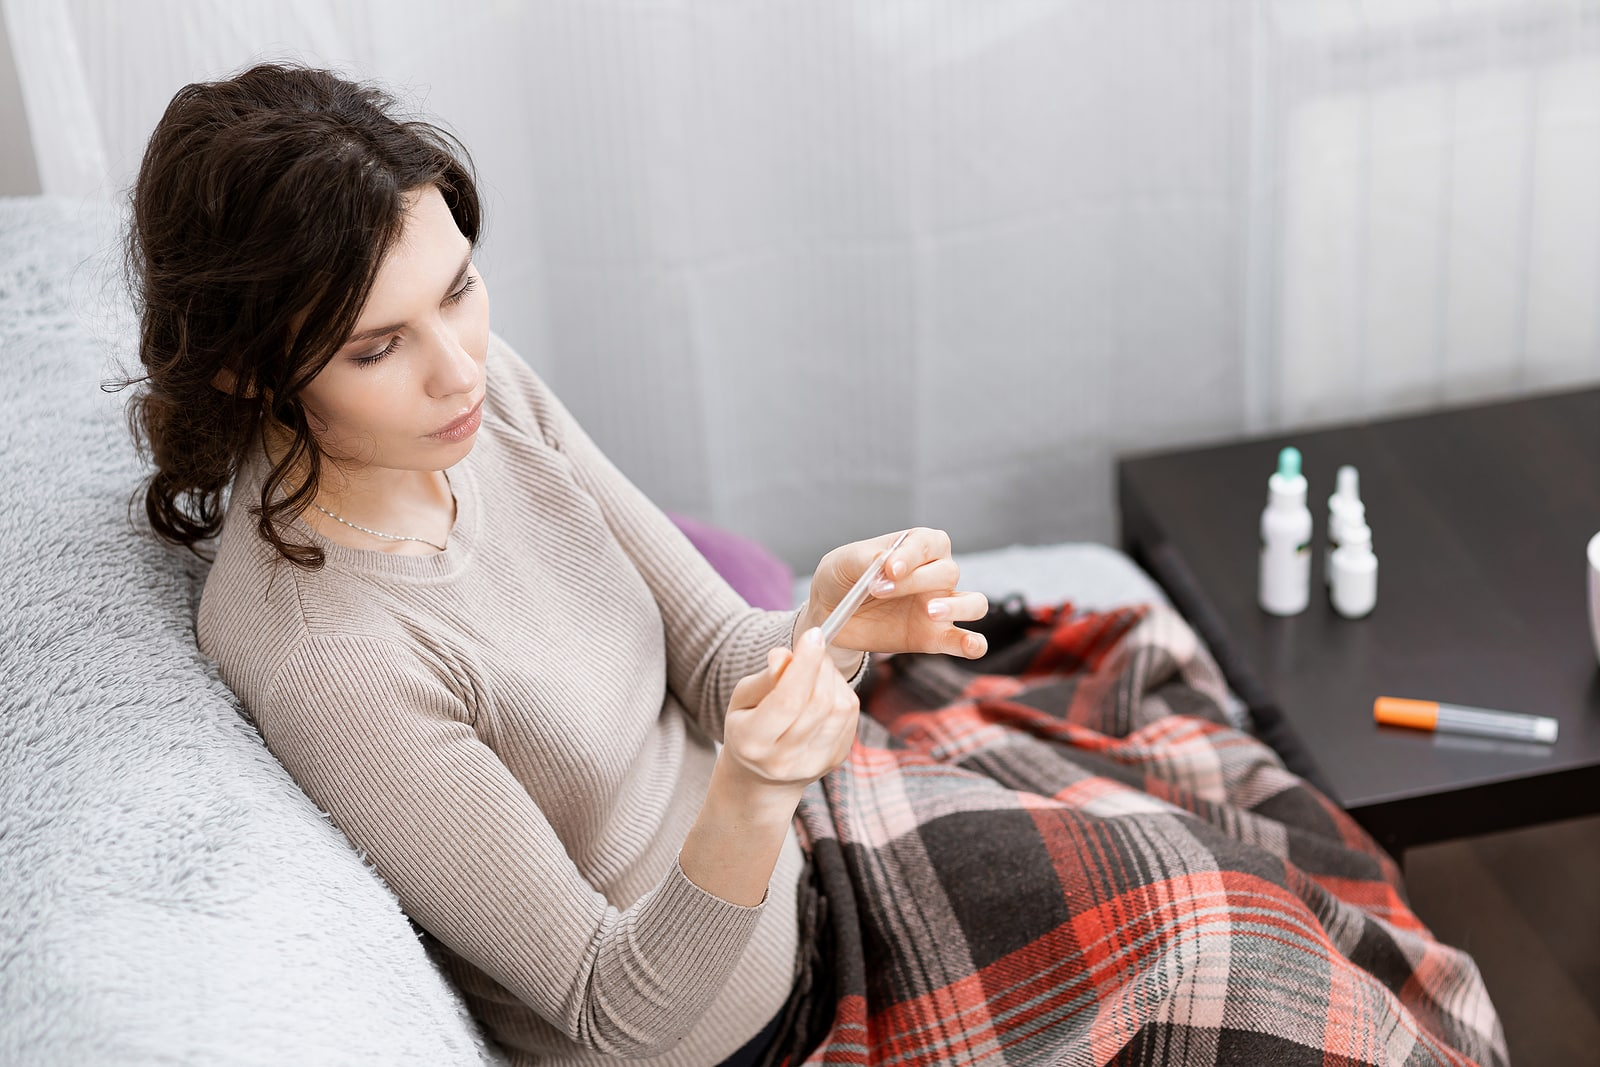 Woman feeling sick at home taking temperature